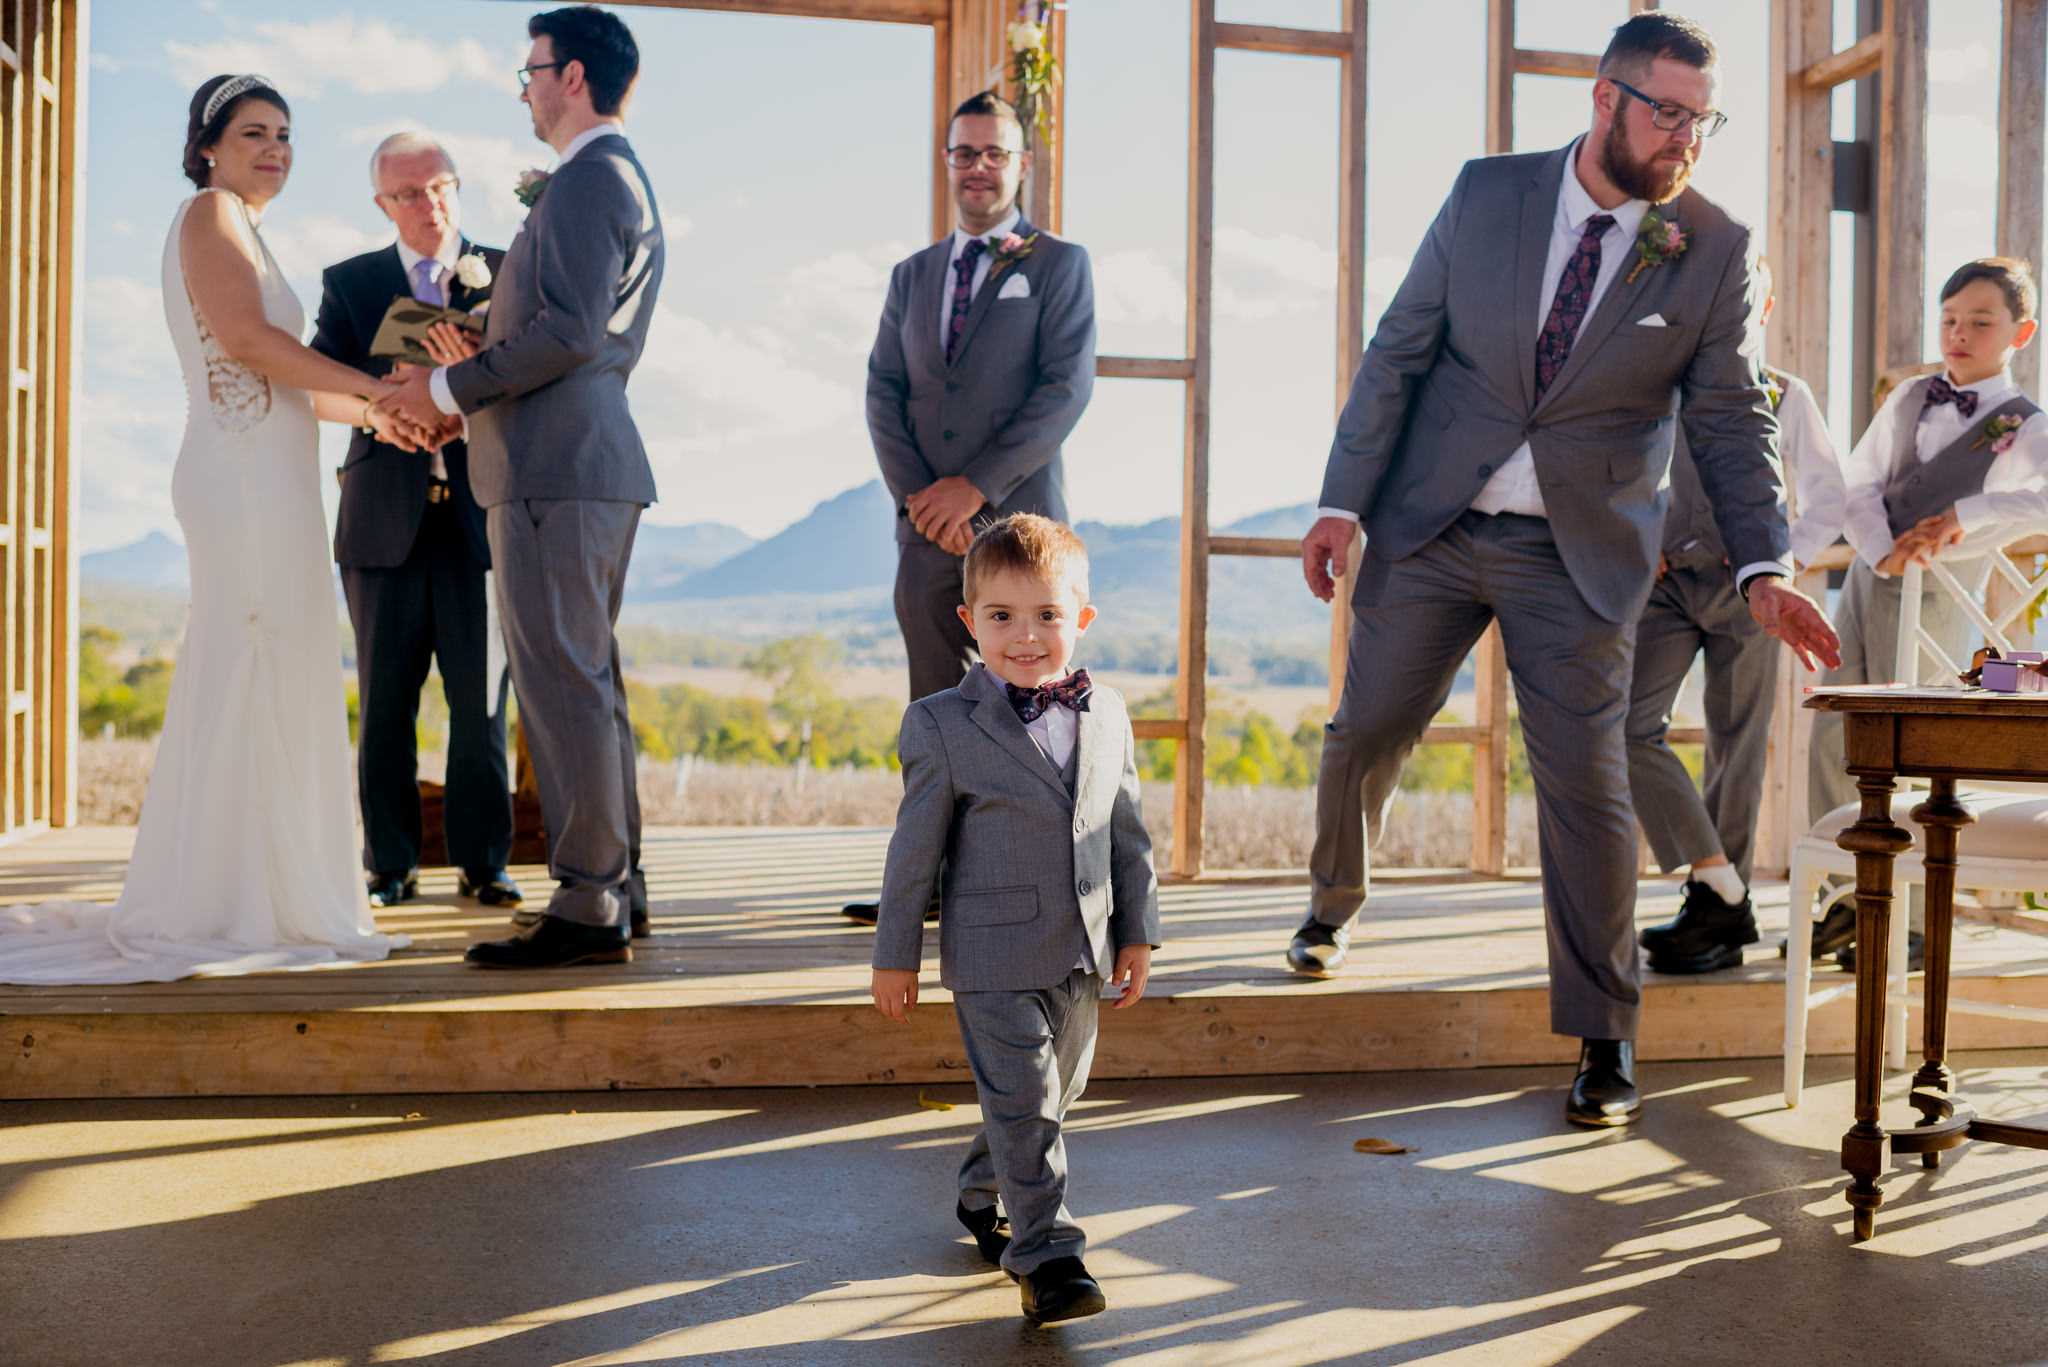 Young boy in suit walks around during a wedding ceremony